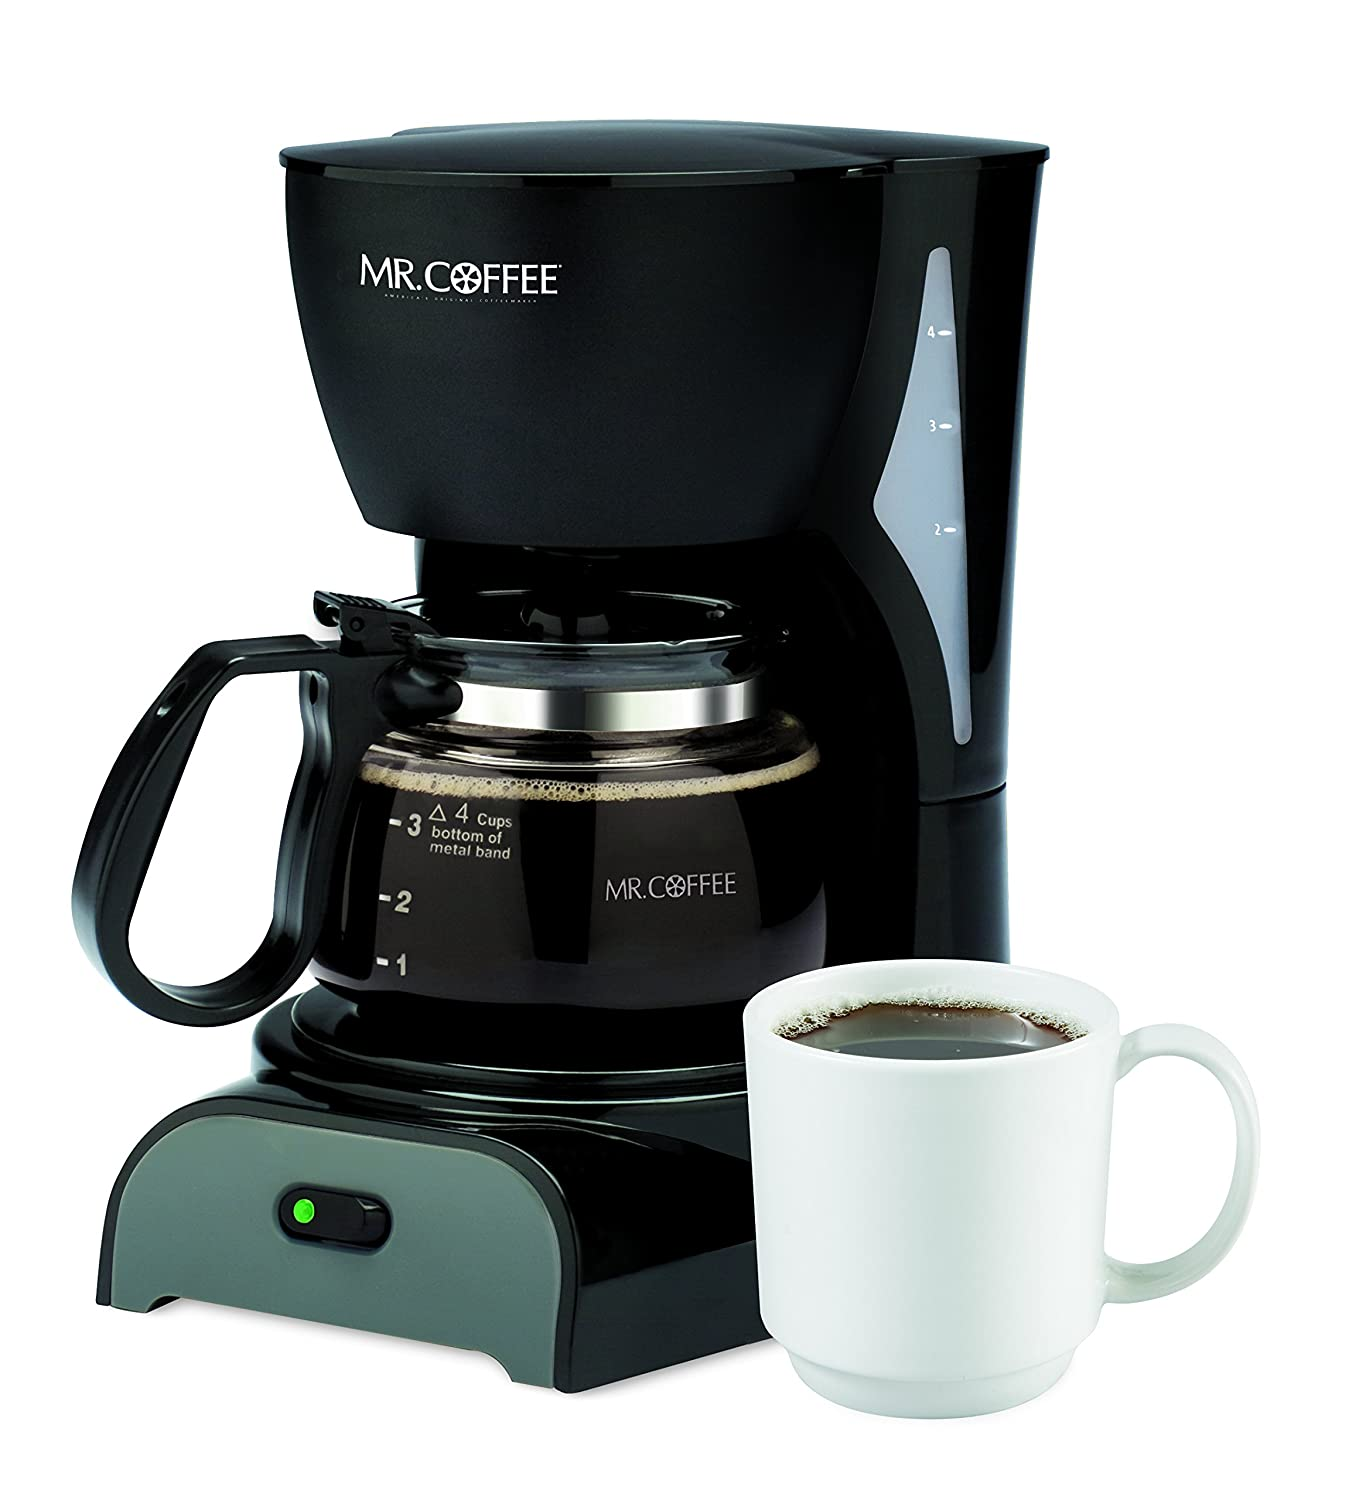 Mr. Coffee Simple Brew 4-Cup Coffee Maker, Black DR5-RB